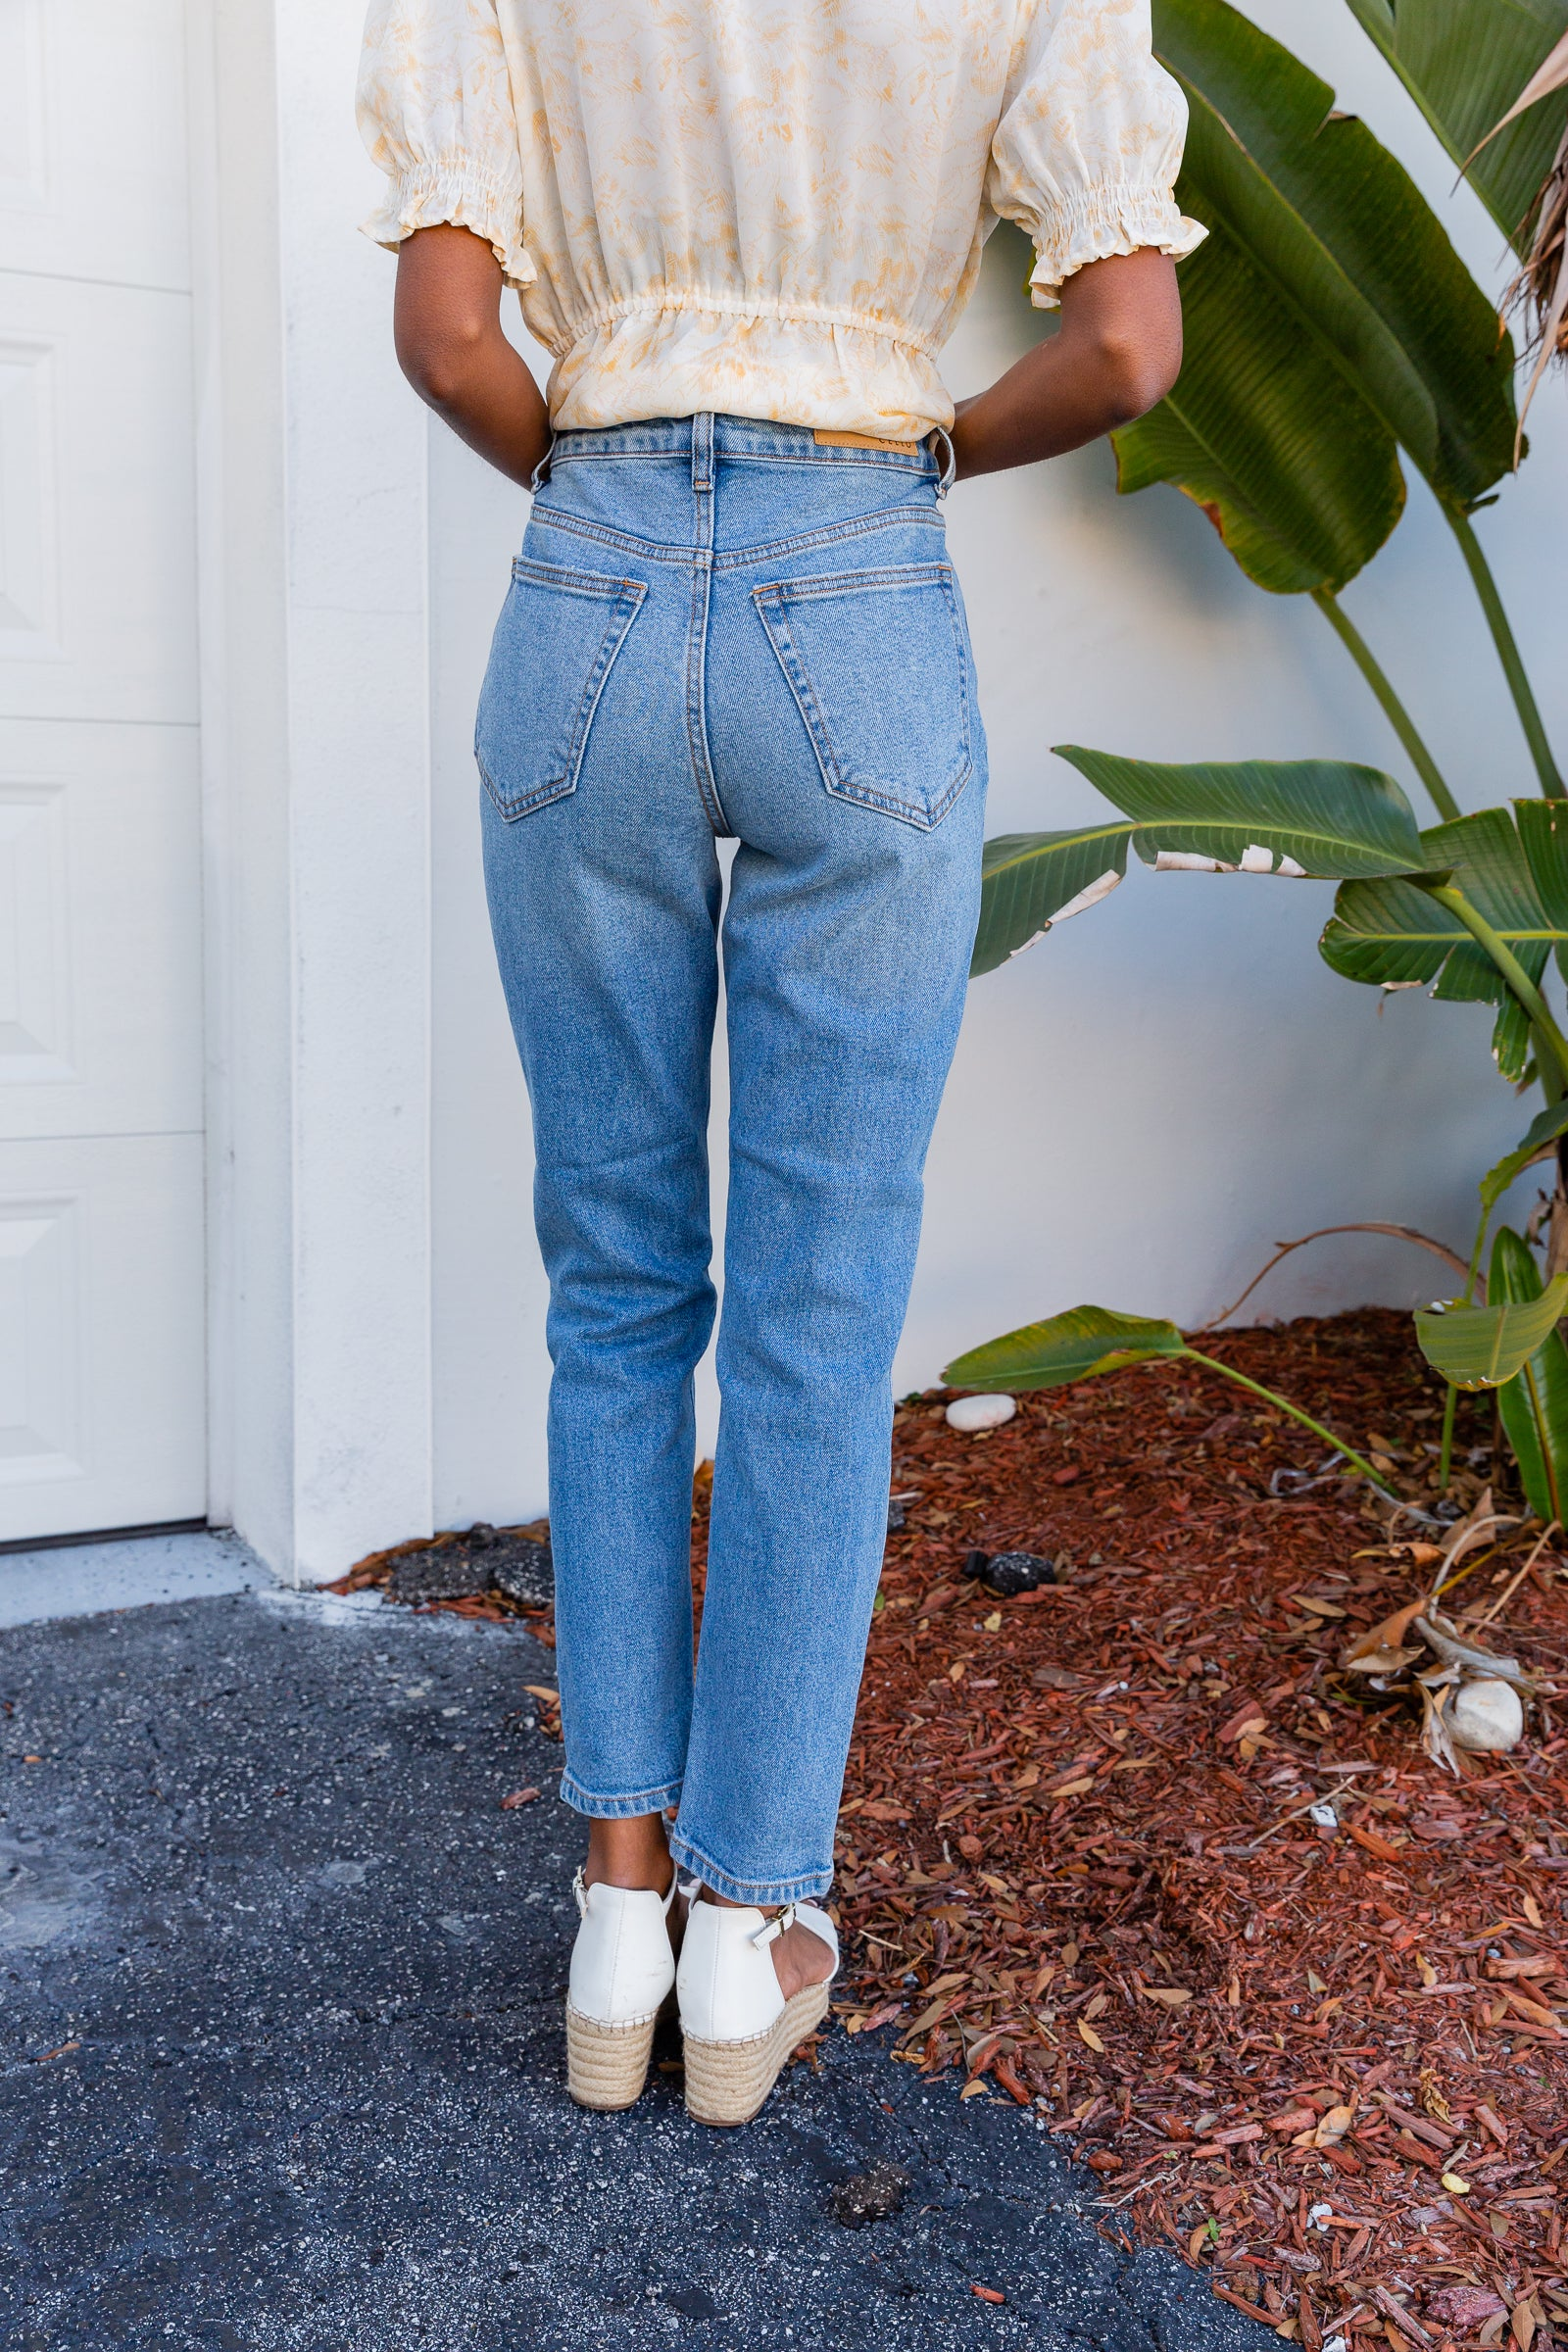 These medium-wash denim jeans have a fitted waistband with belt loops leading to a zipper fly and have a traditional 5-pocket structure and go down into straight pant legs ending in a clean hem.